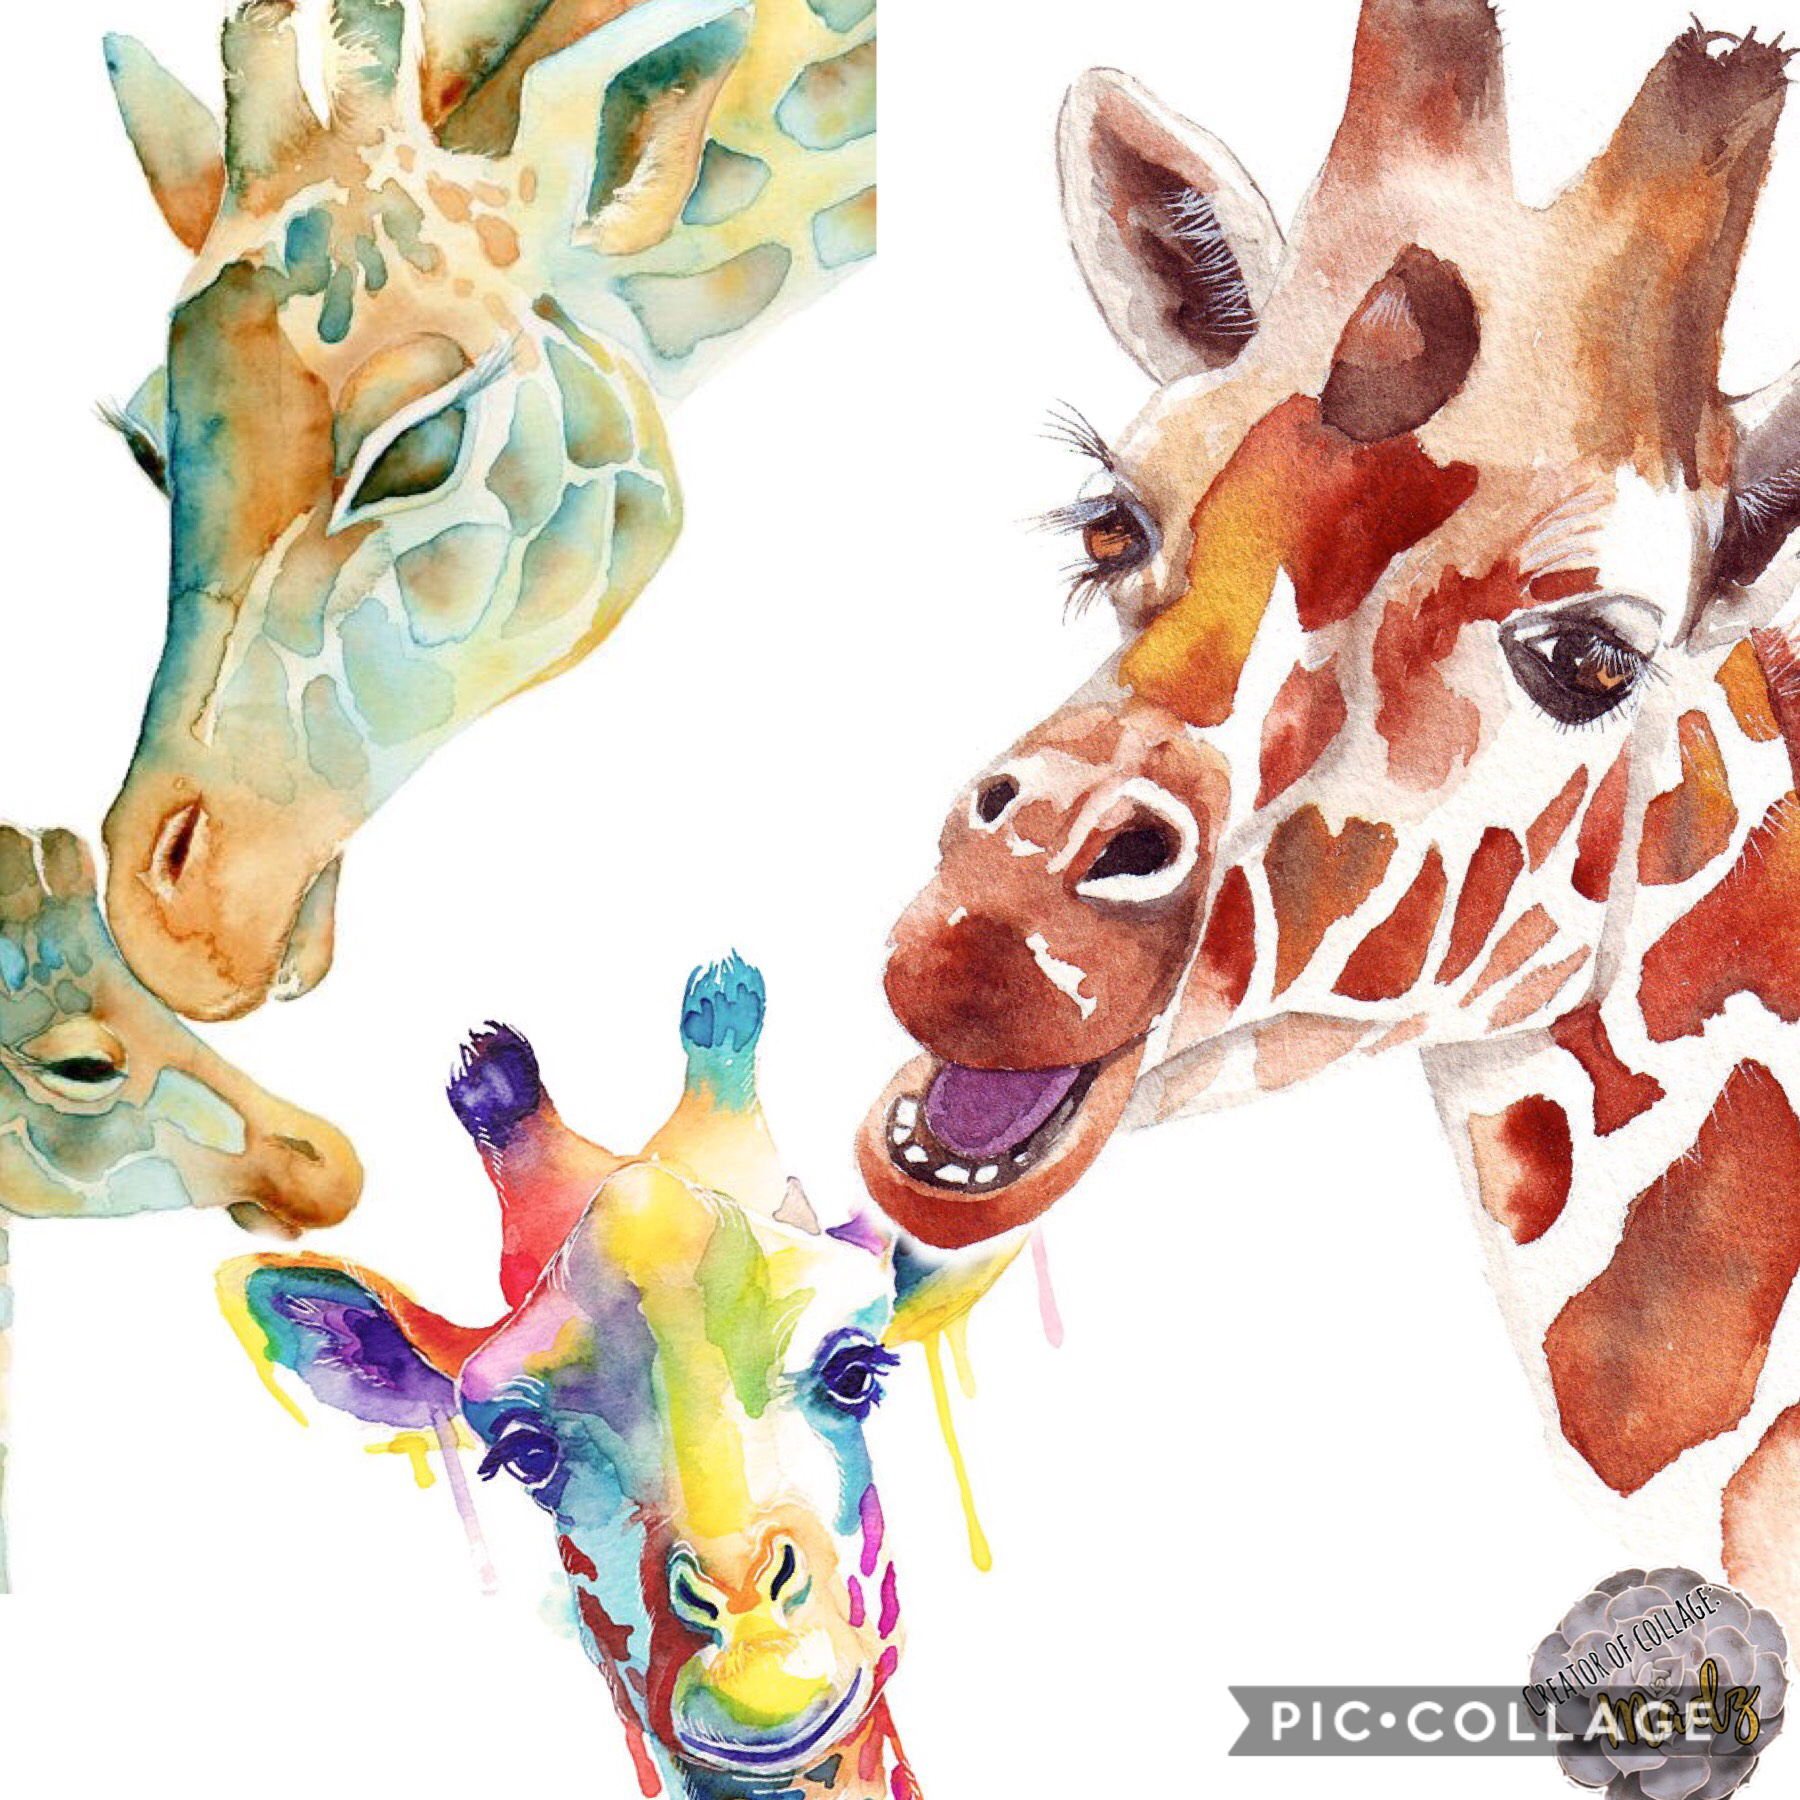 Comment your fave animal/s. One of my fave is giraffe. Bye #madzfam